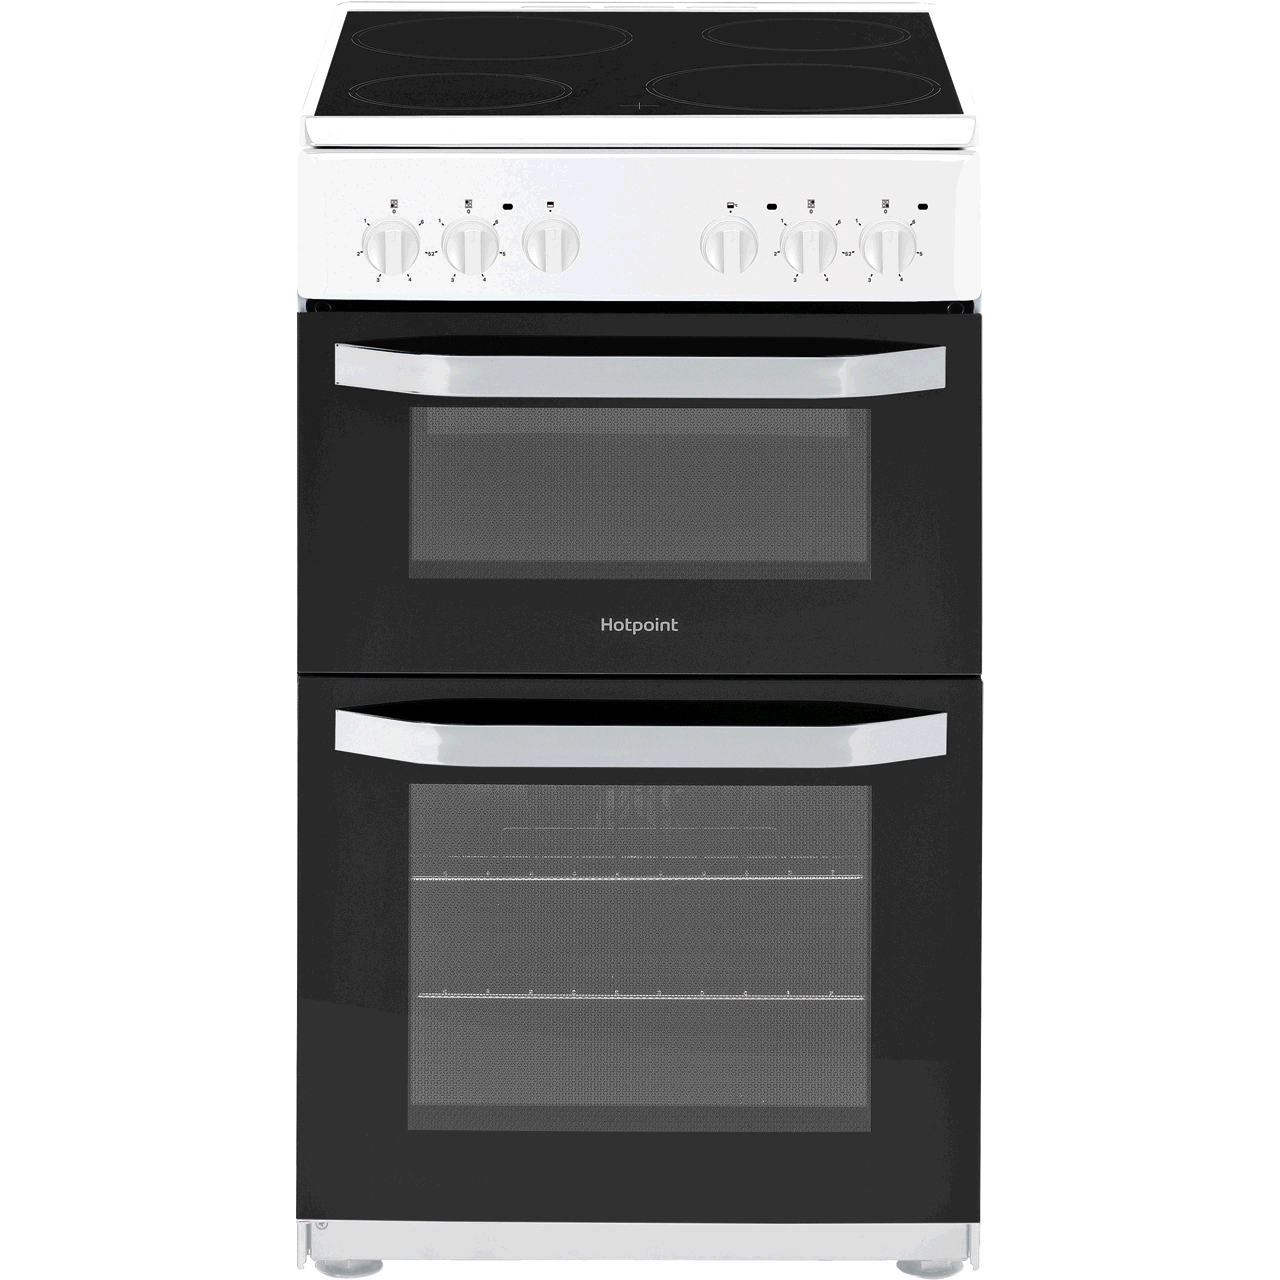 Hotpoint Cloe HD5V92KCB 50cm Electric Cooker with Ceramic Hob - White B Rated